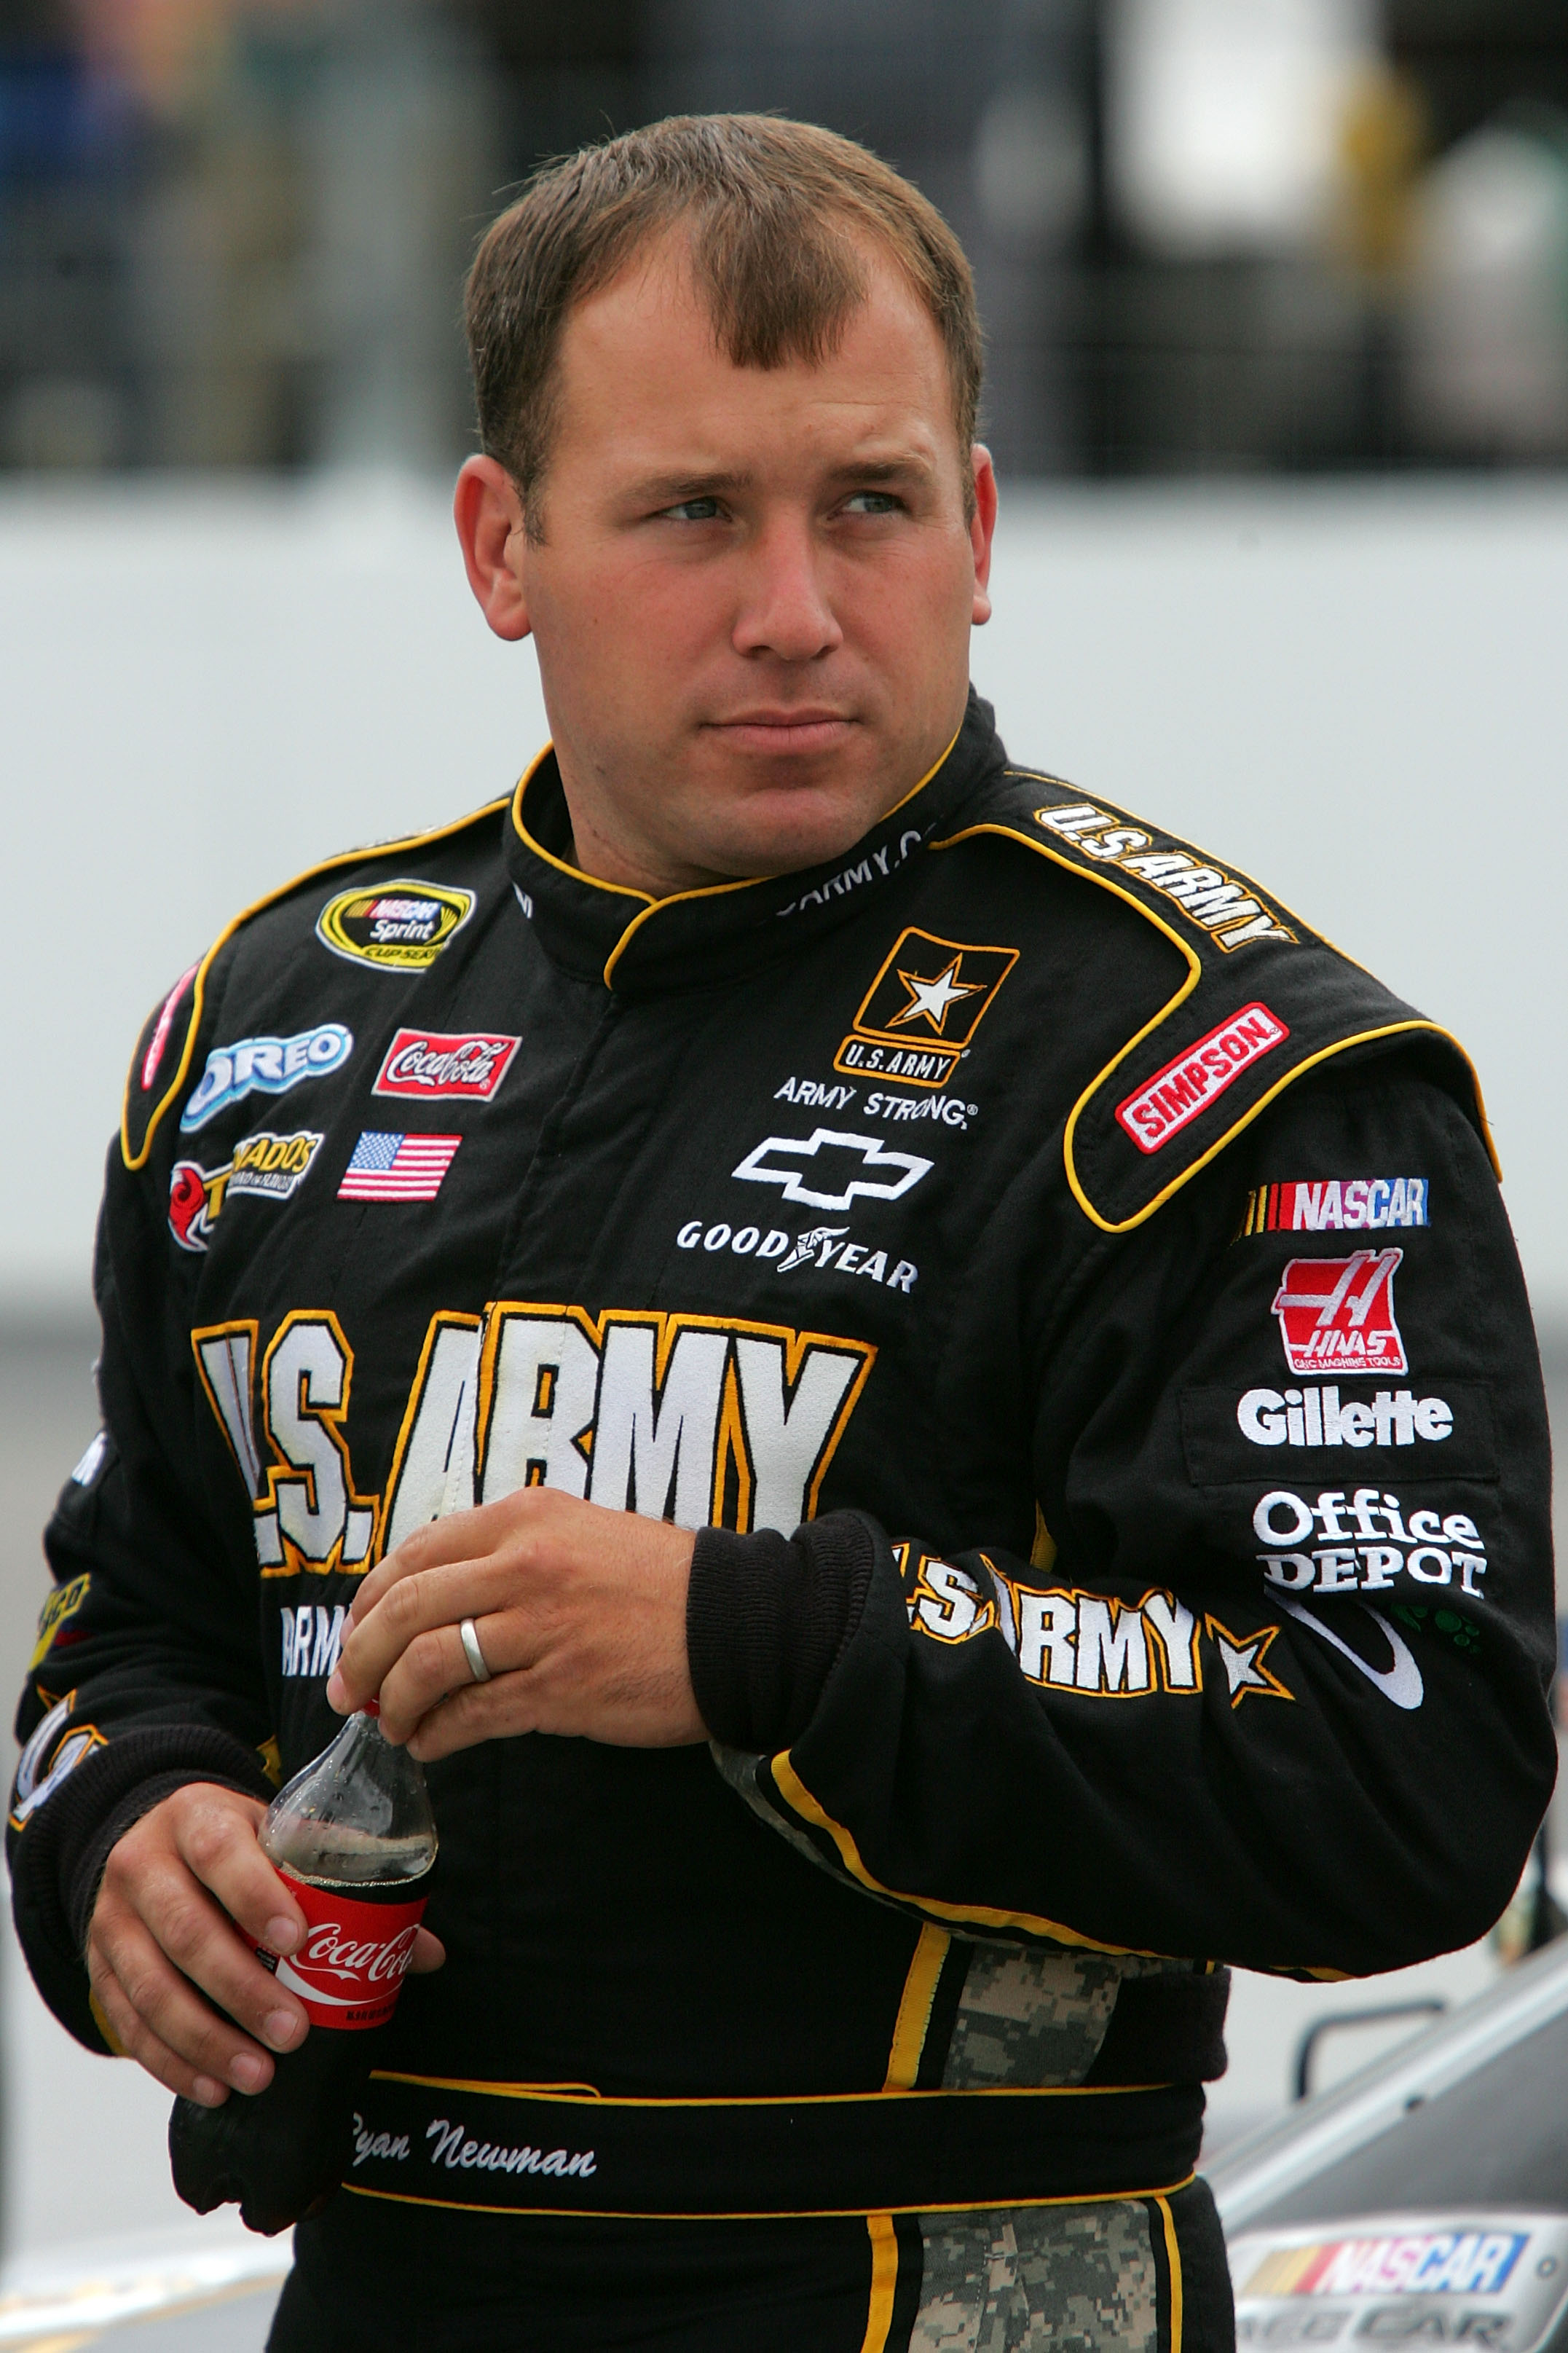 LOUDON, NH - SEPTEMBER 17:  Ryan Newman, driver of the #39 U.S. Army Chevolret, looks on during qualifying for the NASCAR Sprint Cup Series Sylvania 300 at New Hampshire Motor Speedway on September 17, 2010 in Loudon, New Hampshire.  (Photo by Jerry Markl